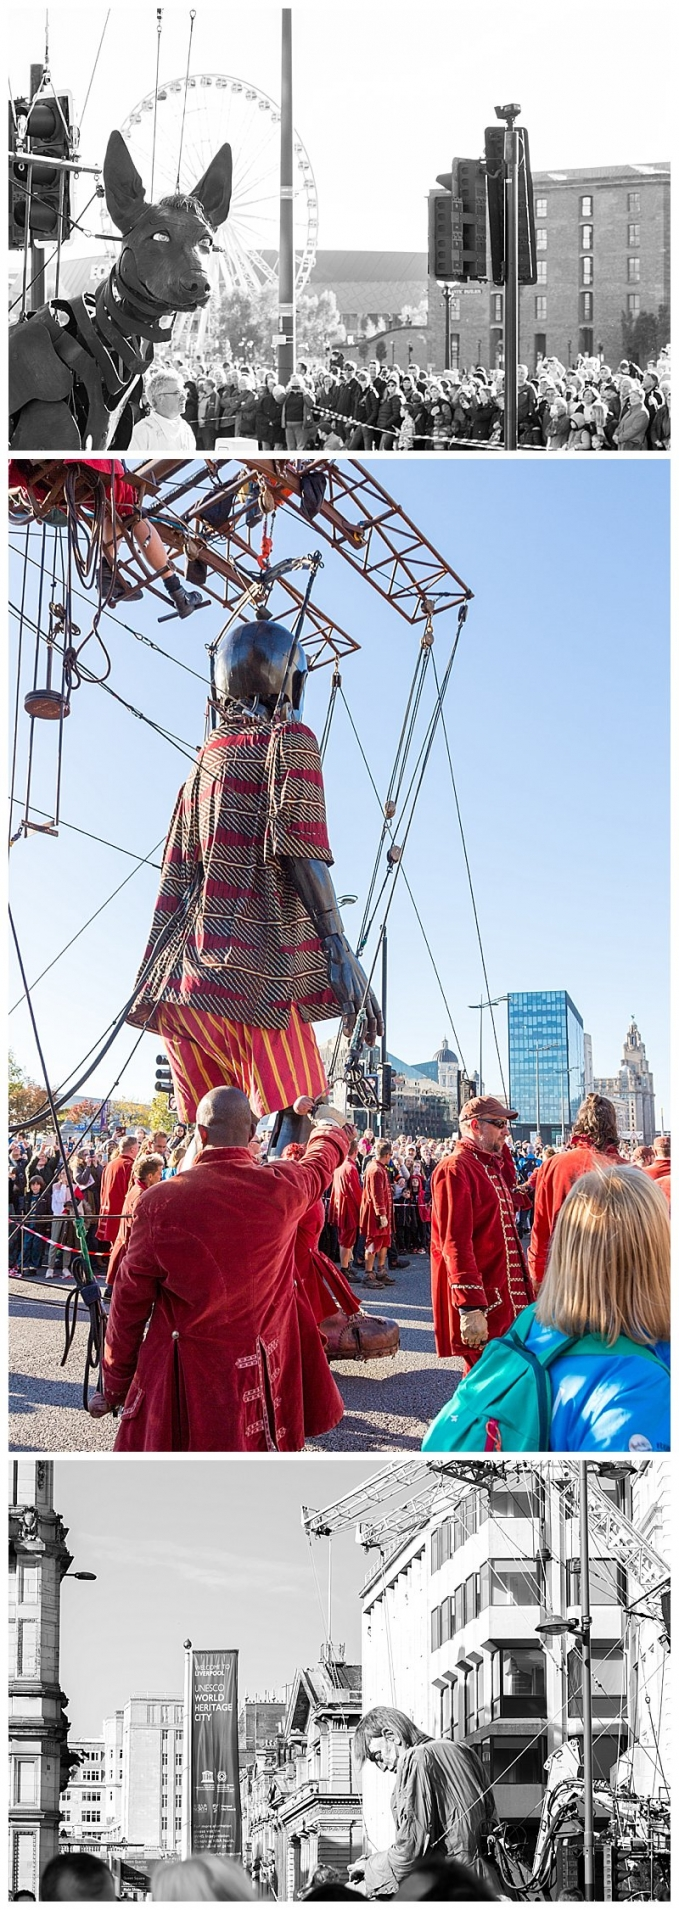 Arts,Culture,Cumbria,Fine Art Photography,Joanne Withers Photography,Liverpool,Photographer Cumbria,Royal de Luxe,St Marks Stays,The Giants,